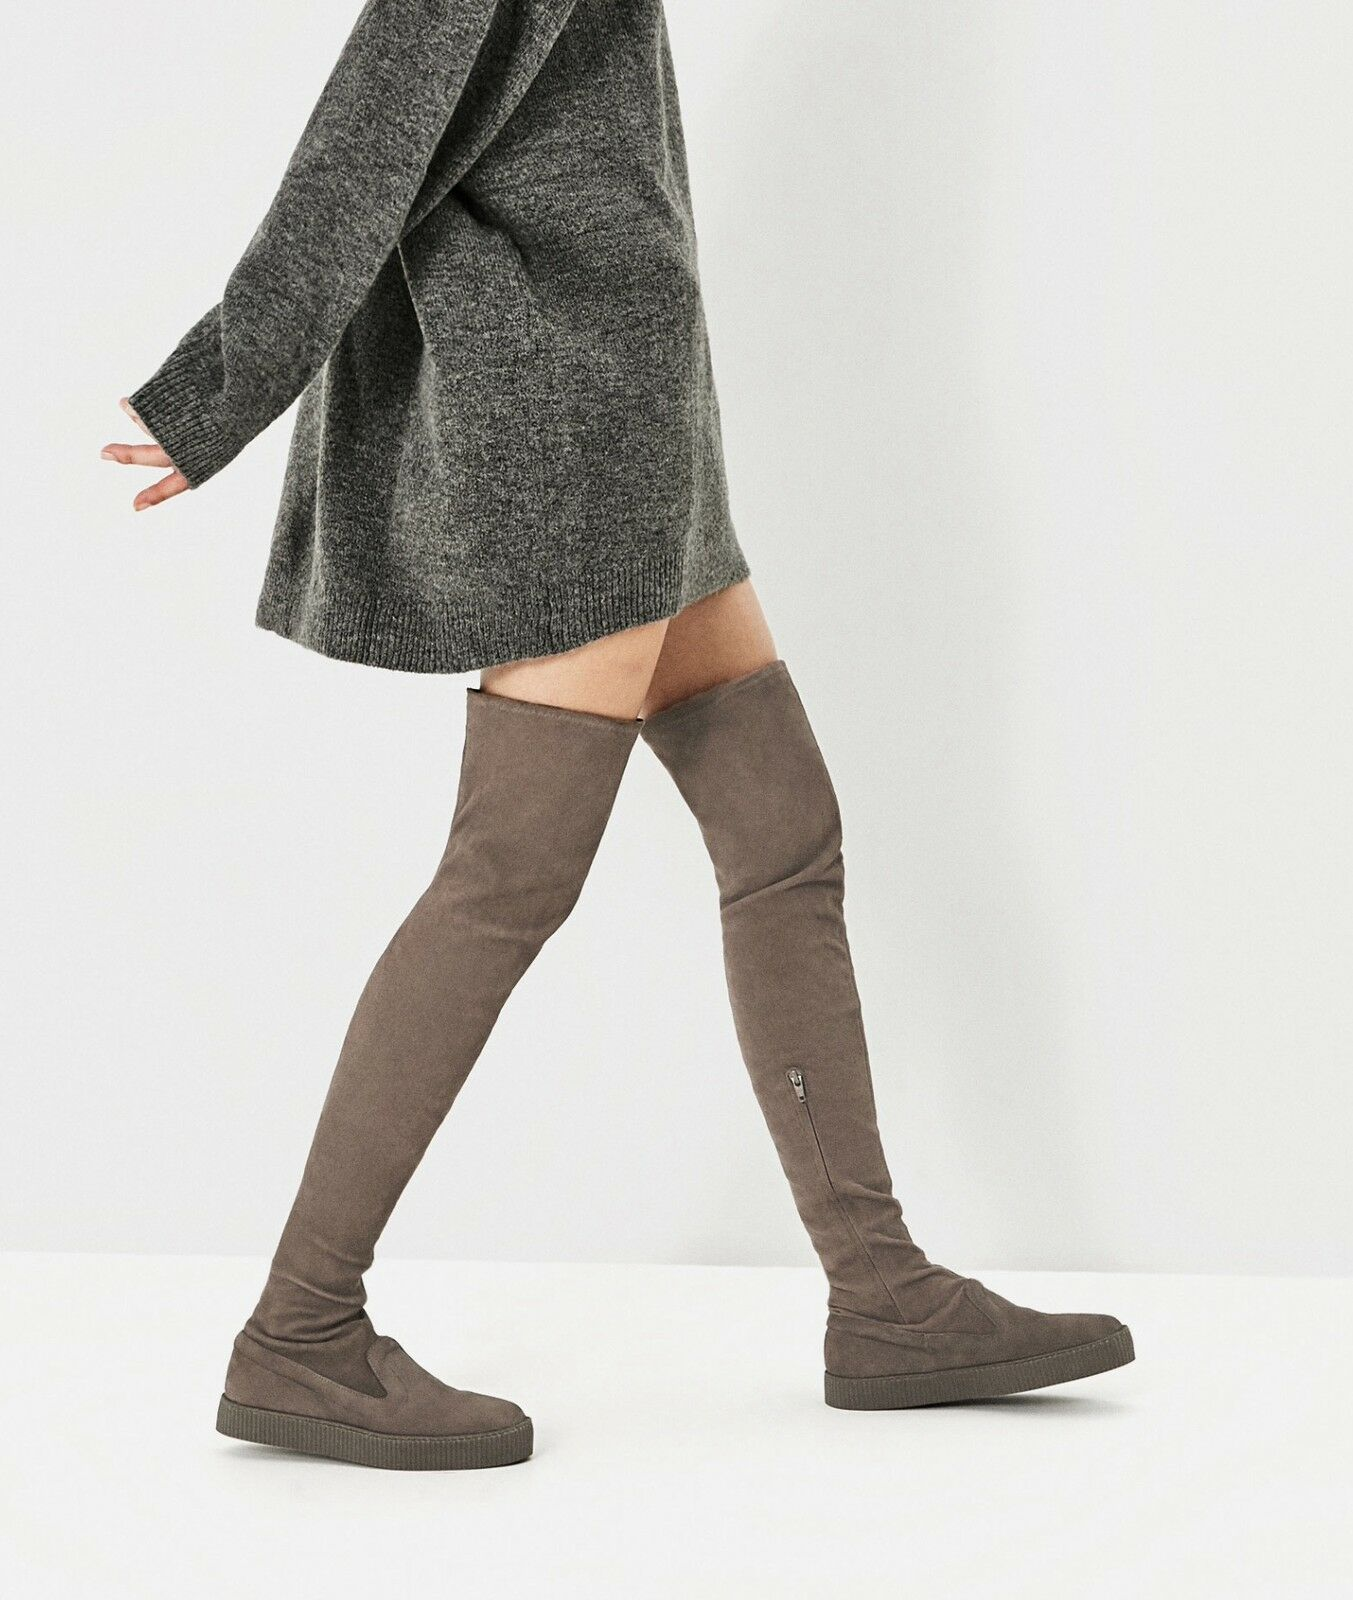 ZARA AW 2016 LEATHER OVER-THE-KNEE OVER-THE-KNEE LEATHER CASUAL Stiefel TAUPE ALL SIZES REF. 5001/101 d23118